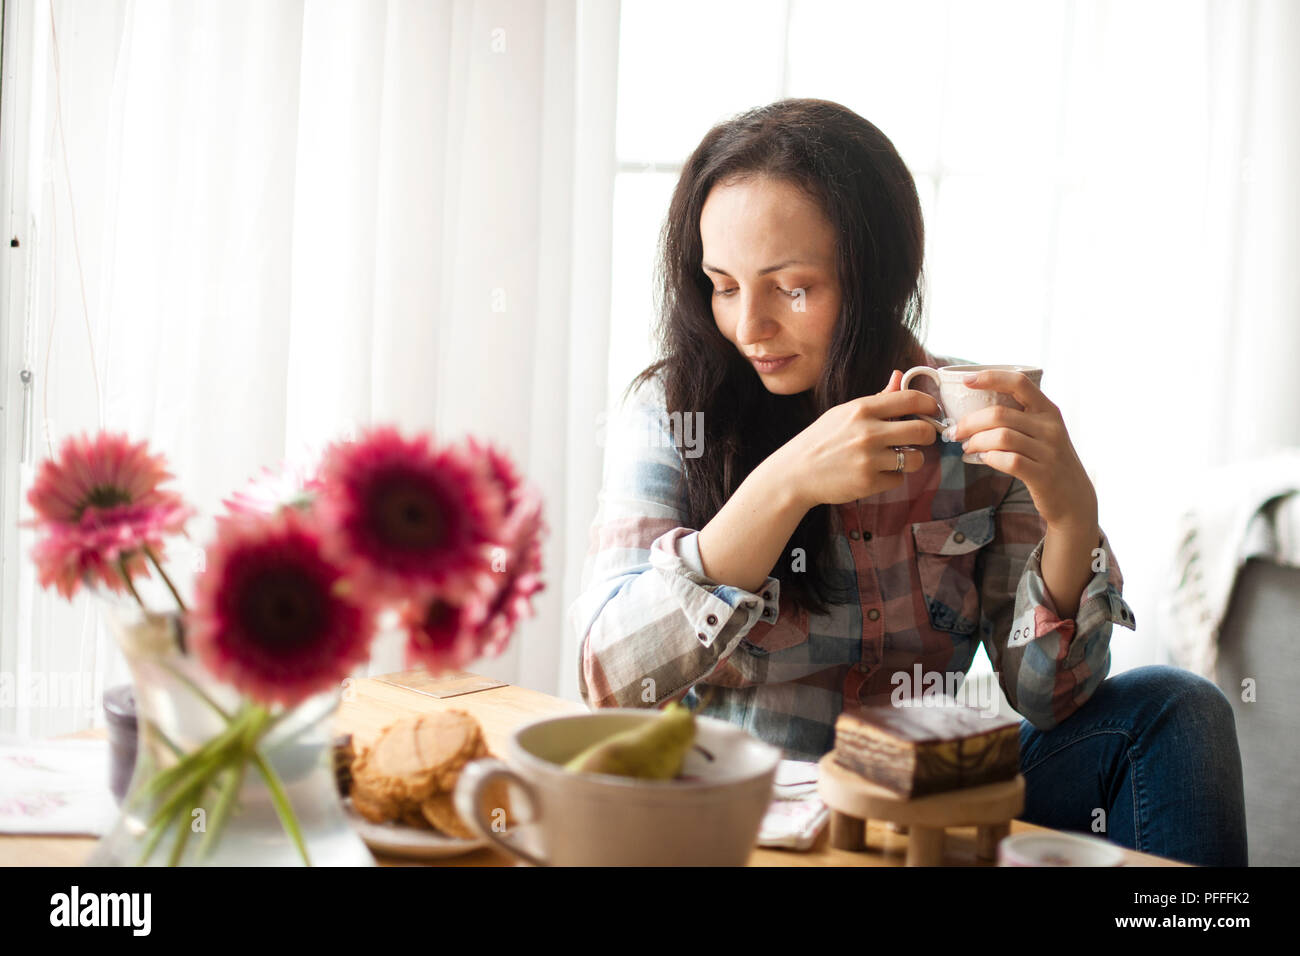 Woman with a mug of coffee, a good morning at home. Breakfast and fragrant coffee. The interior is cozy and the flowers. Free space for text. - Stock Image